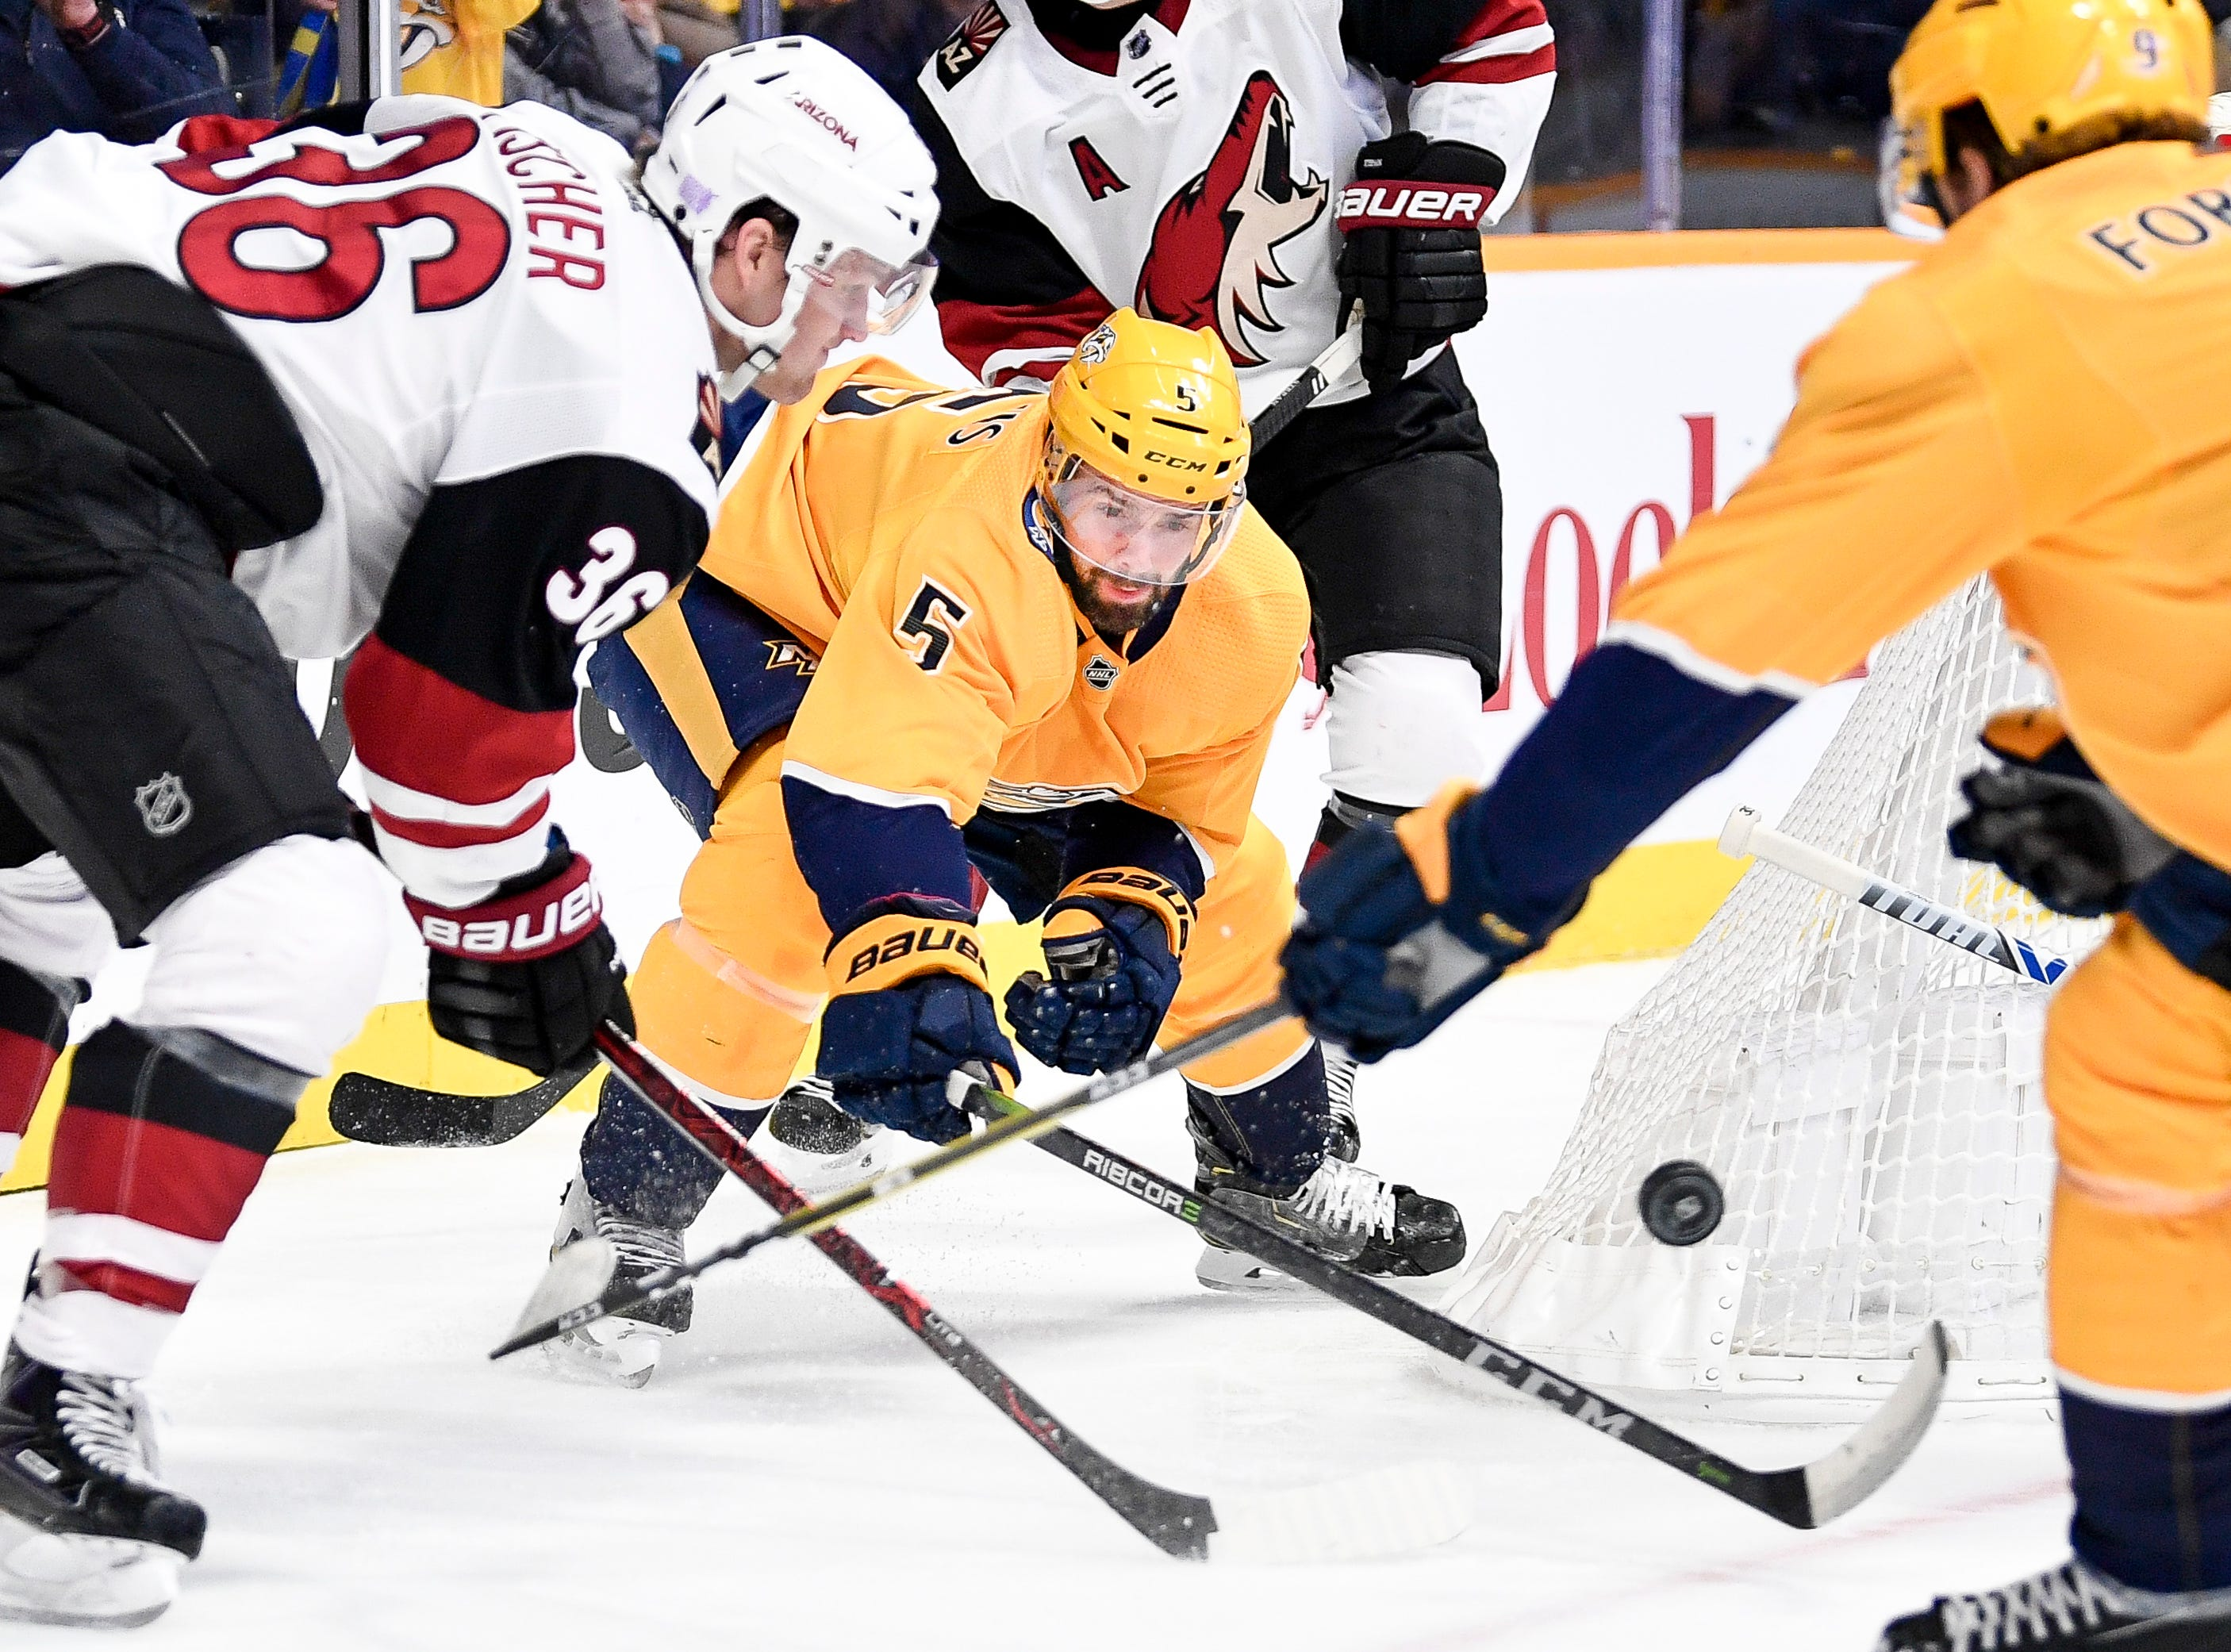 Nashville Predators defenseman Dan Hamhuis (5) leans in for the puck against Arizona Coyotes right wing Christian Fischer (36) during the second period at Bridgestone Arena in Nashville, Tenn., Thursday, Nov. 29, 2018.